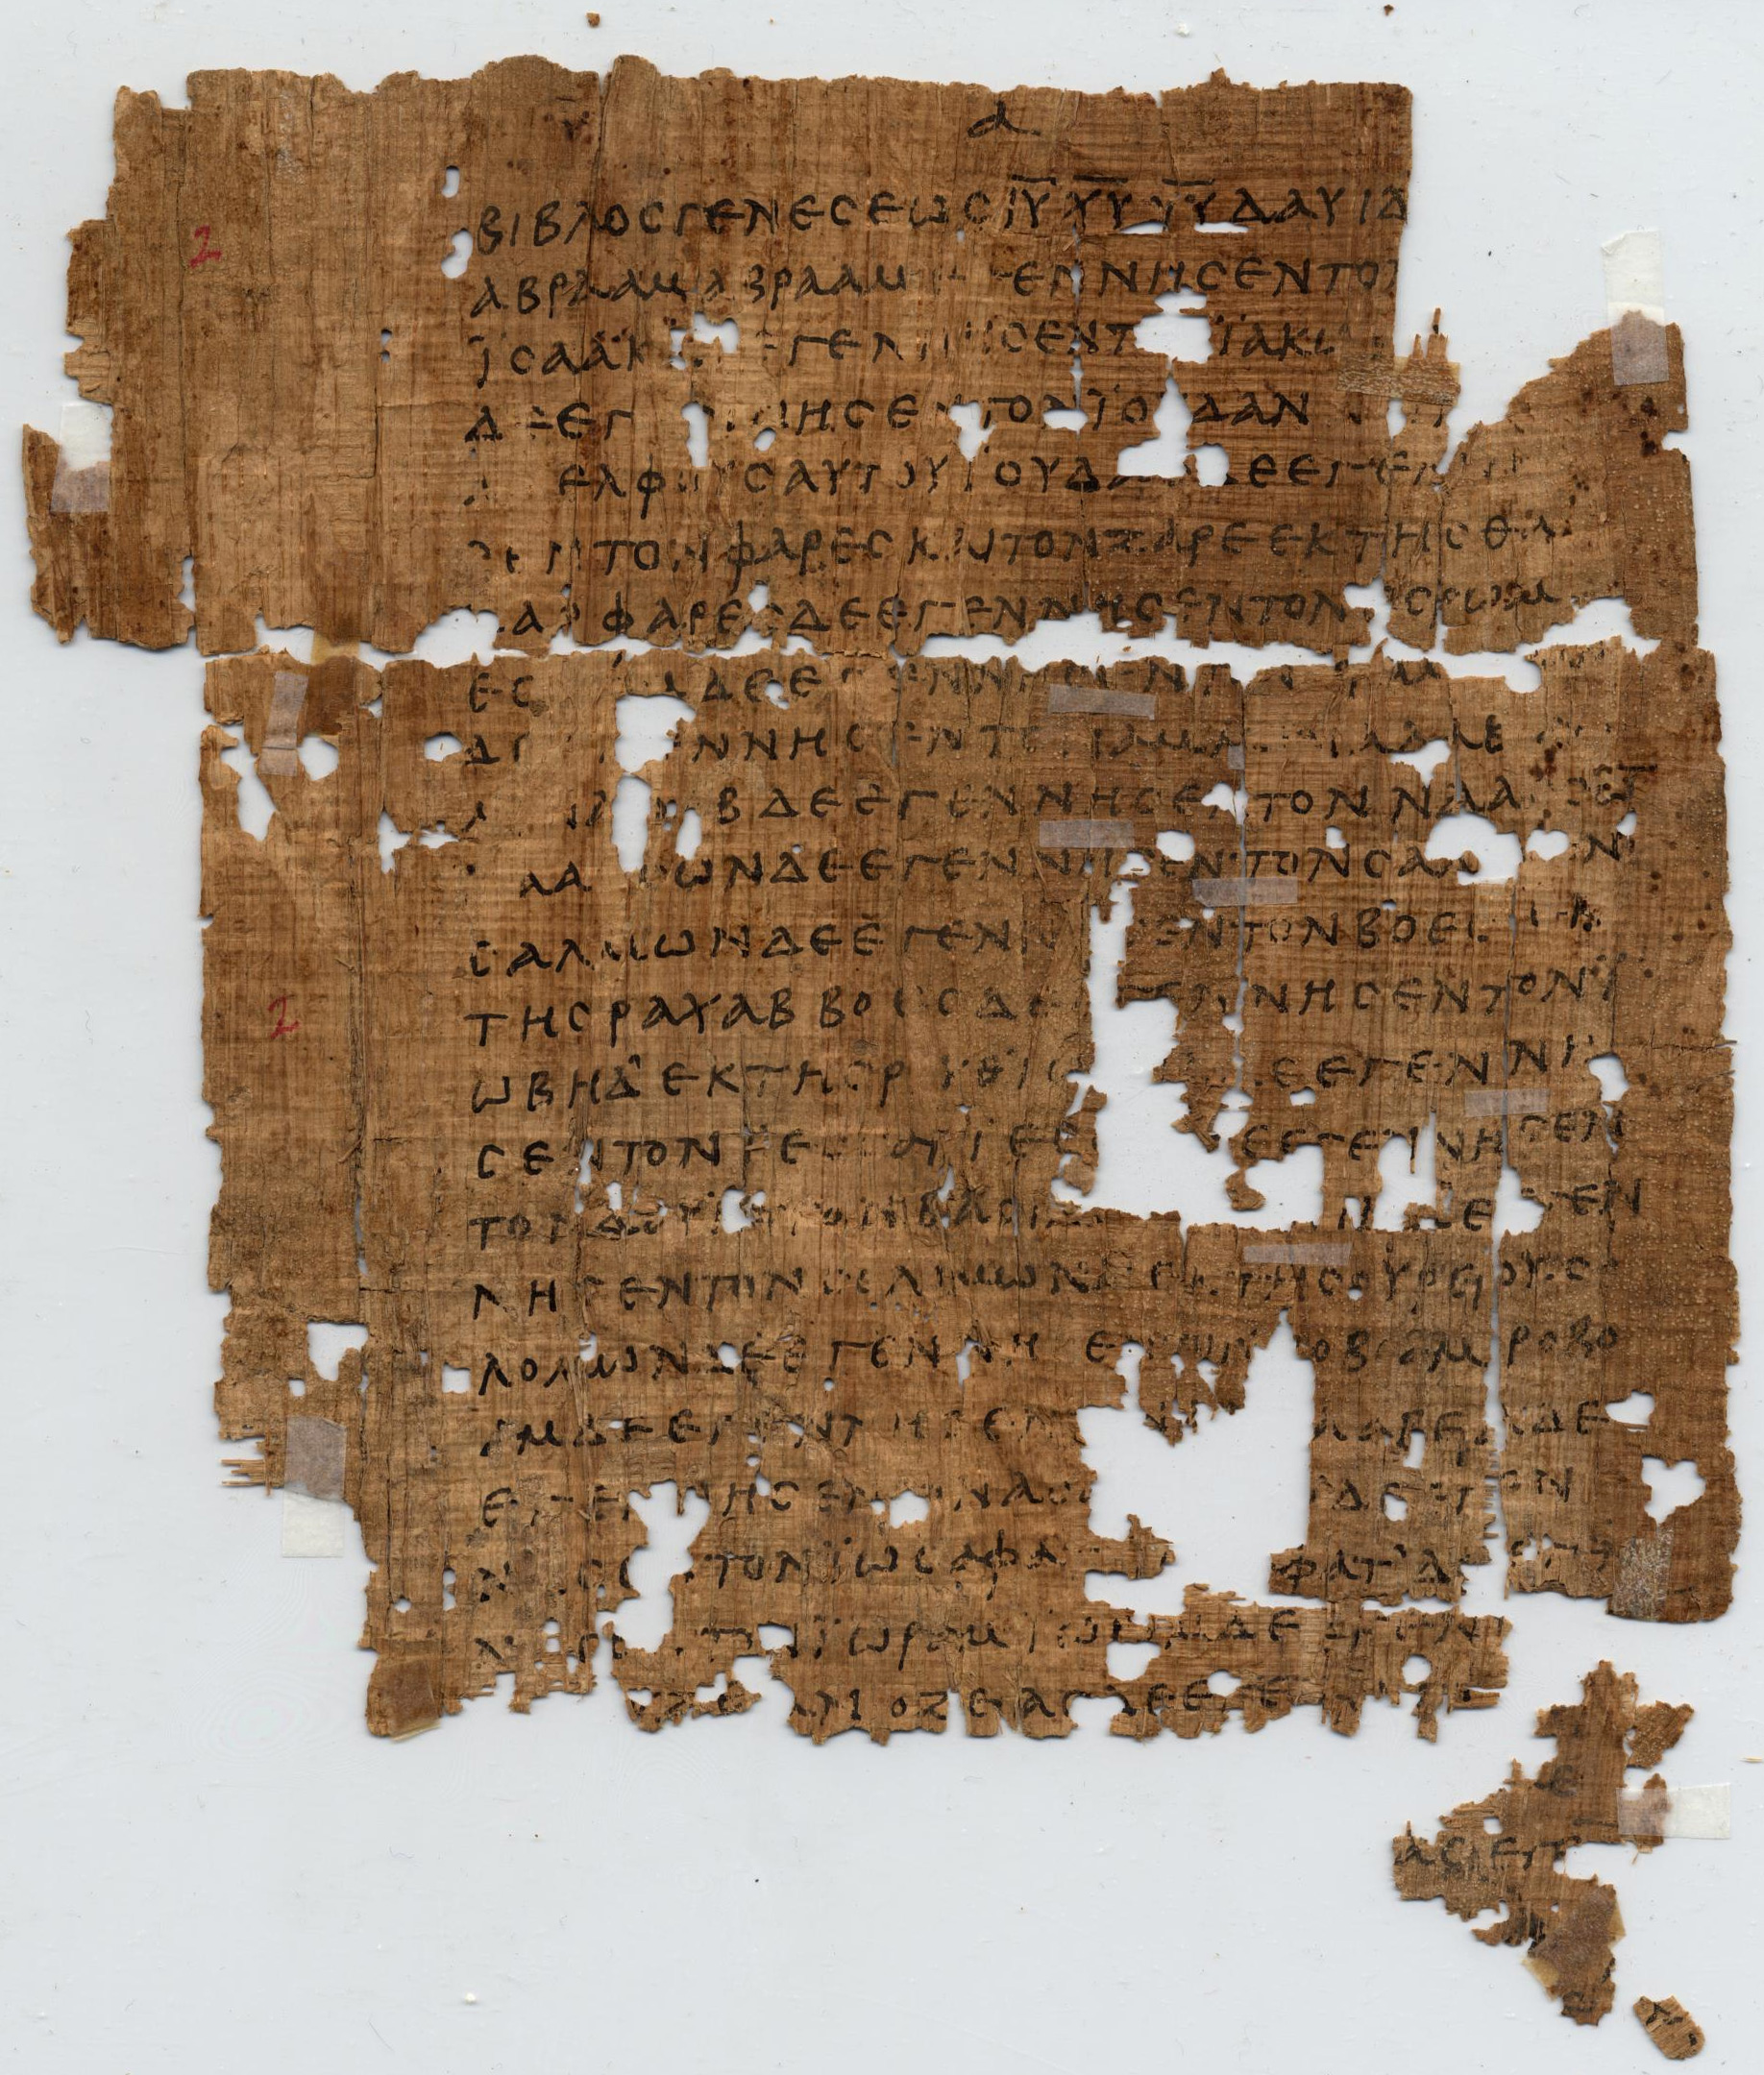 http://upload.wikimedia.org/wikipedia/commons/3/3f/Papyrus_1_-_recto.jpg